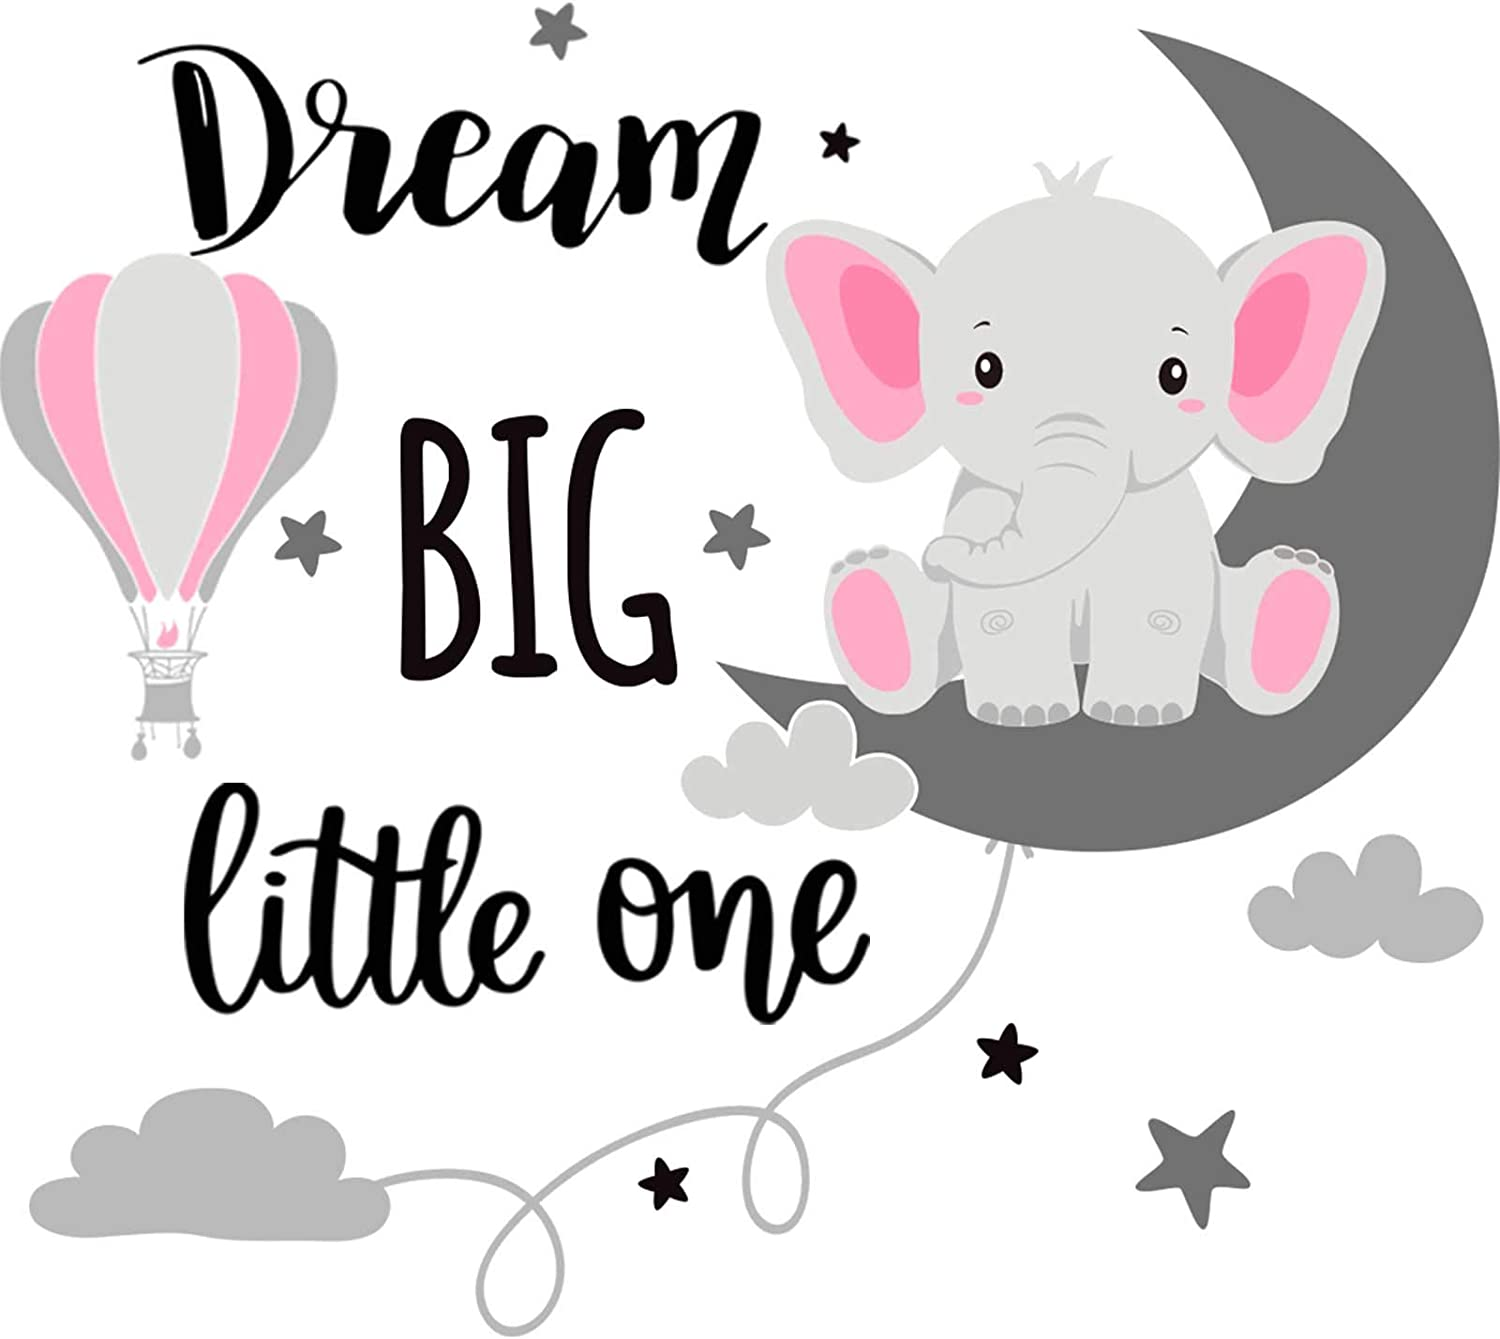 Dream Big Little One Elephant Wall Decals Baby Elephant Wall Stickers Cloud Moon and Star Decal Self Adhesive Wall Decor for Baby Kids Boy Girl Bedroom Nursery Cradle